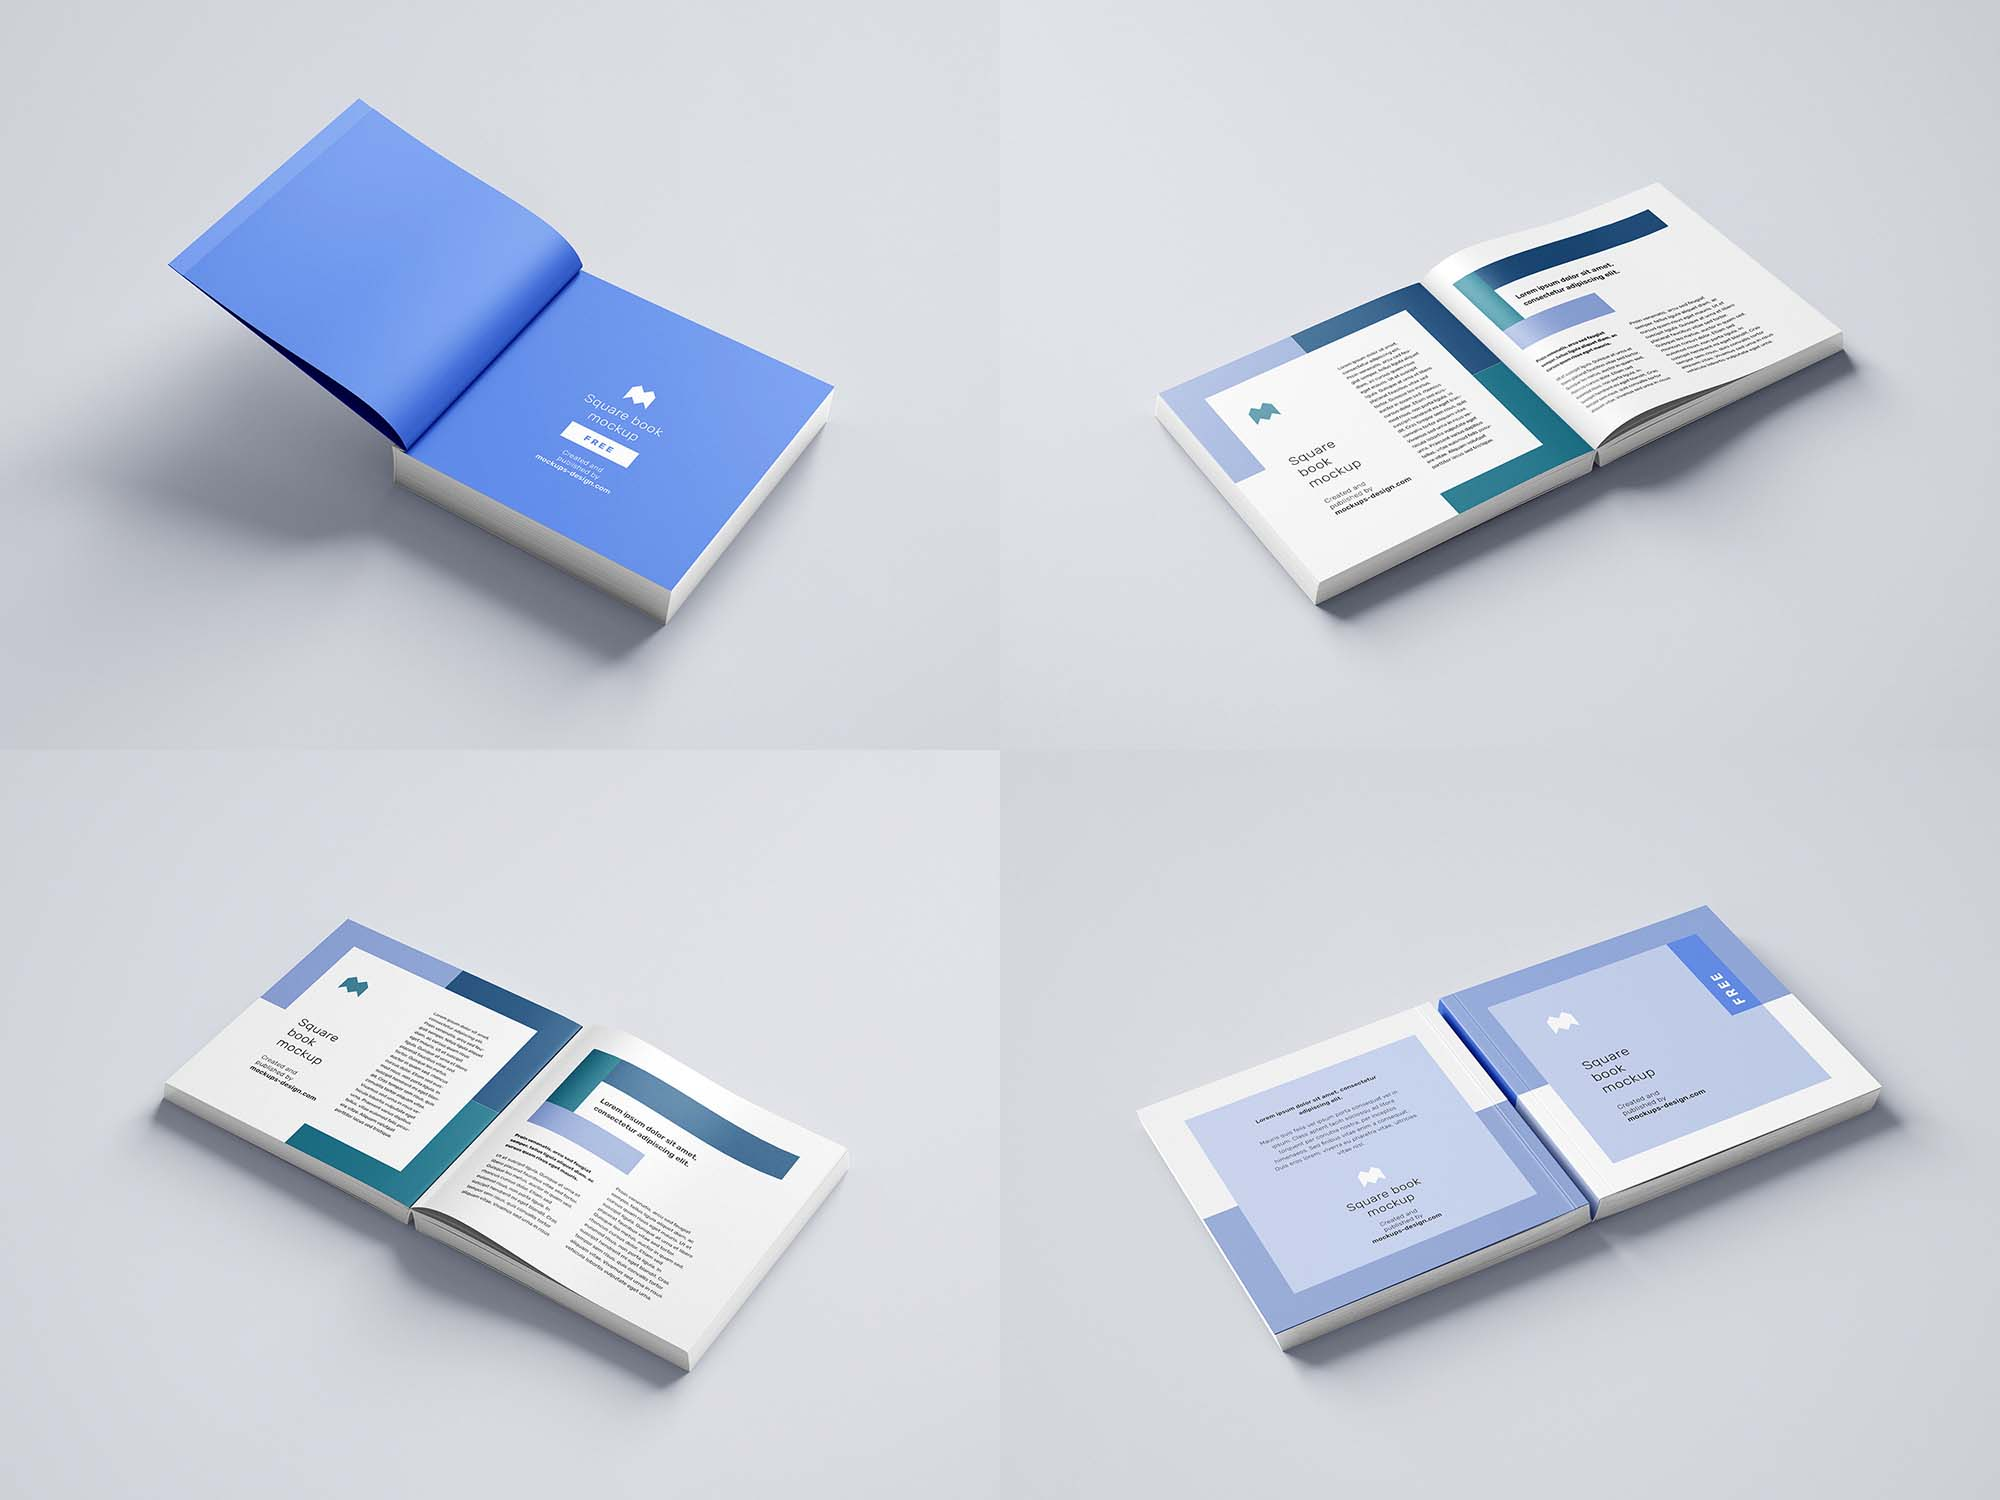 Softcover Square Book Mockup